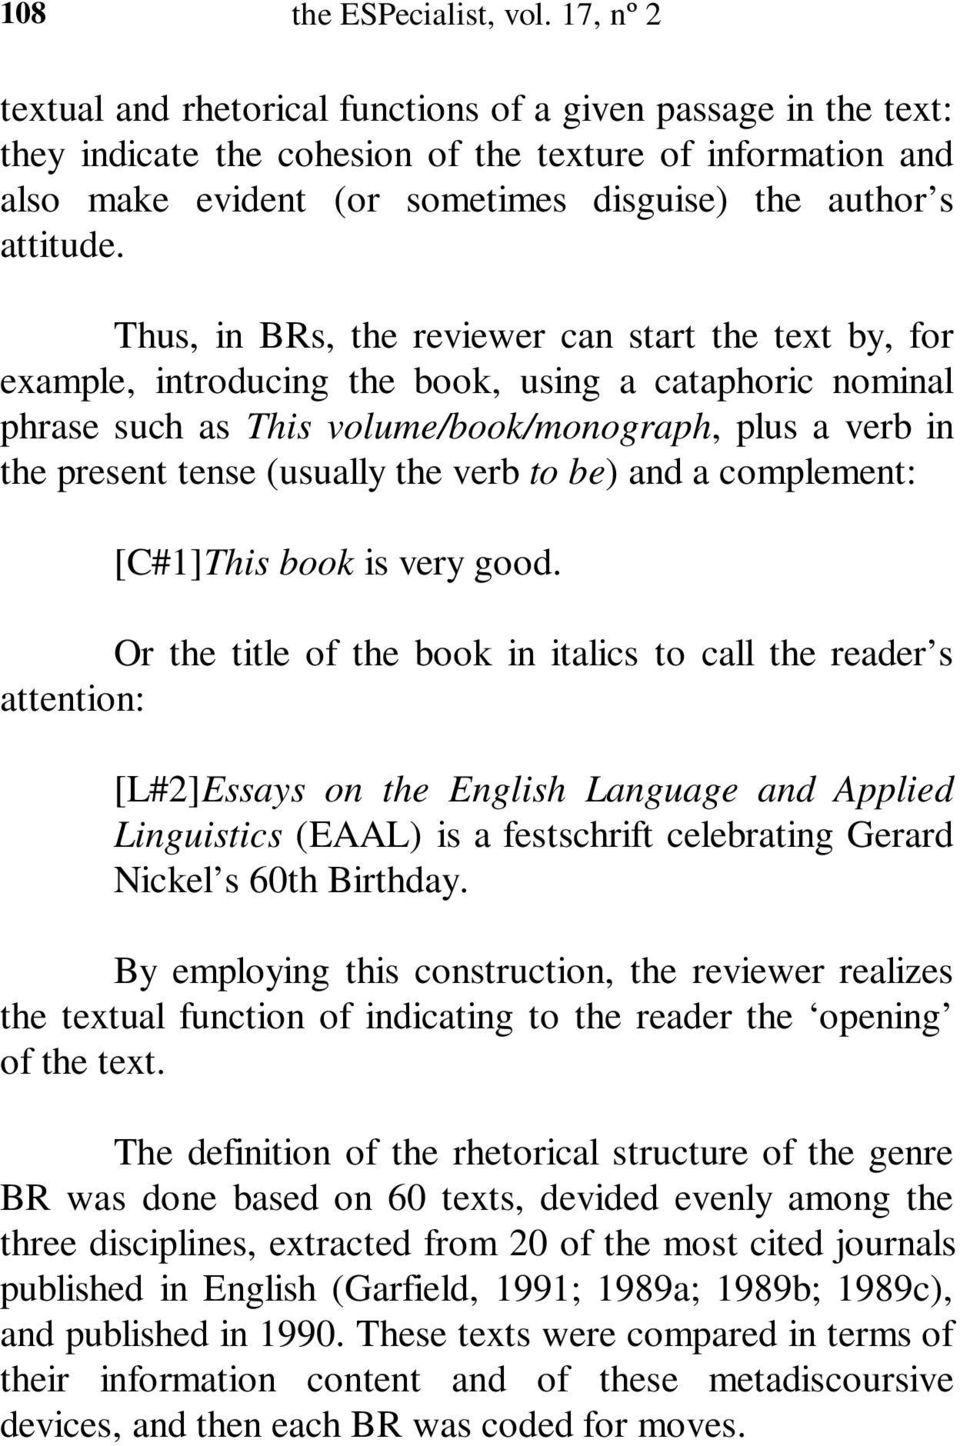 Thus, in BRs, the reviewer can start the text by, for example, introducing the book, using a cataphoric nominal phrase such as This volume/book/monograph, plus a verb in the present tense (usually